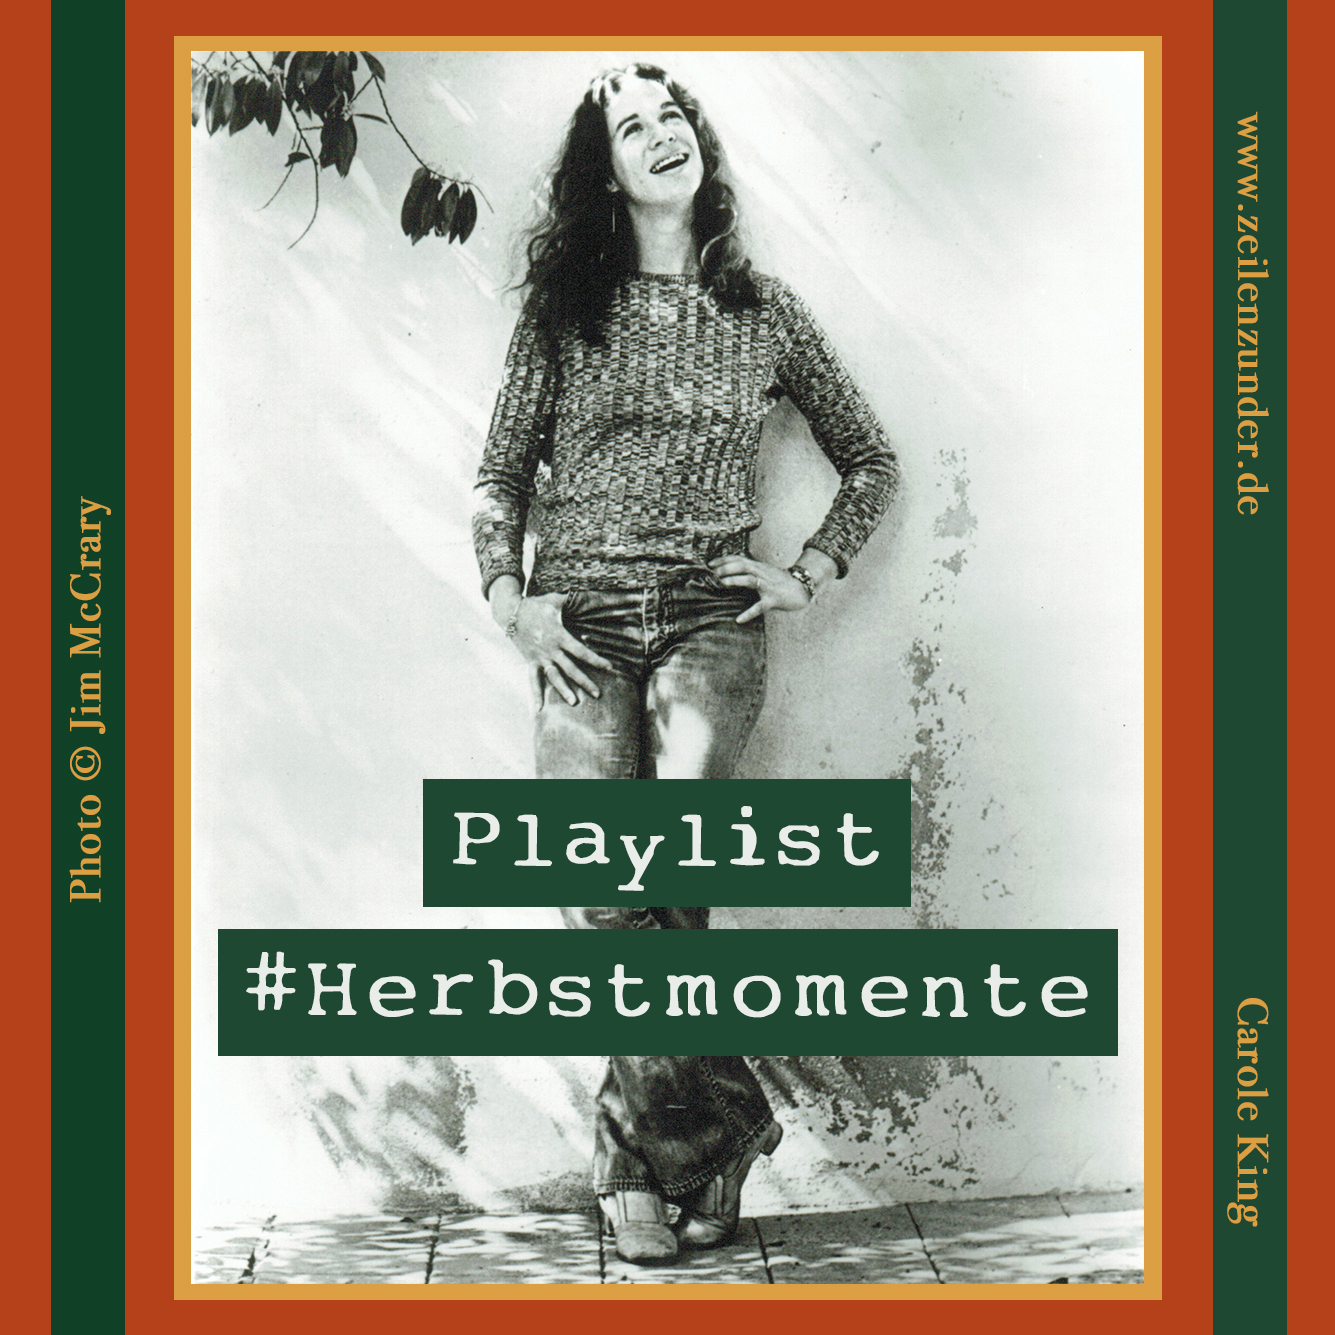 Playlist #Herbstmomente